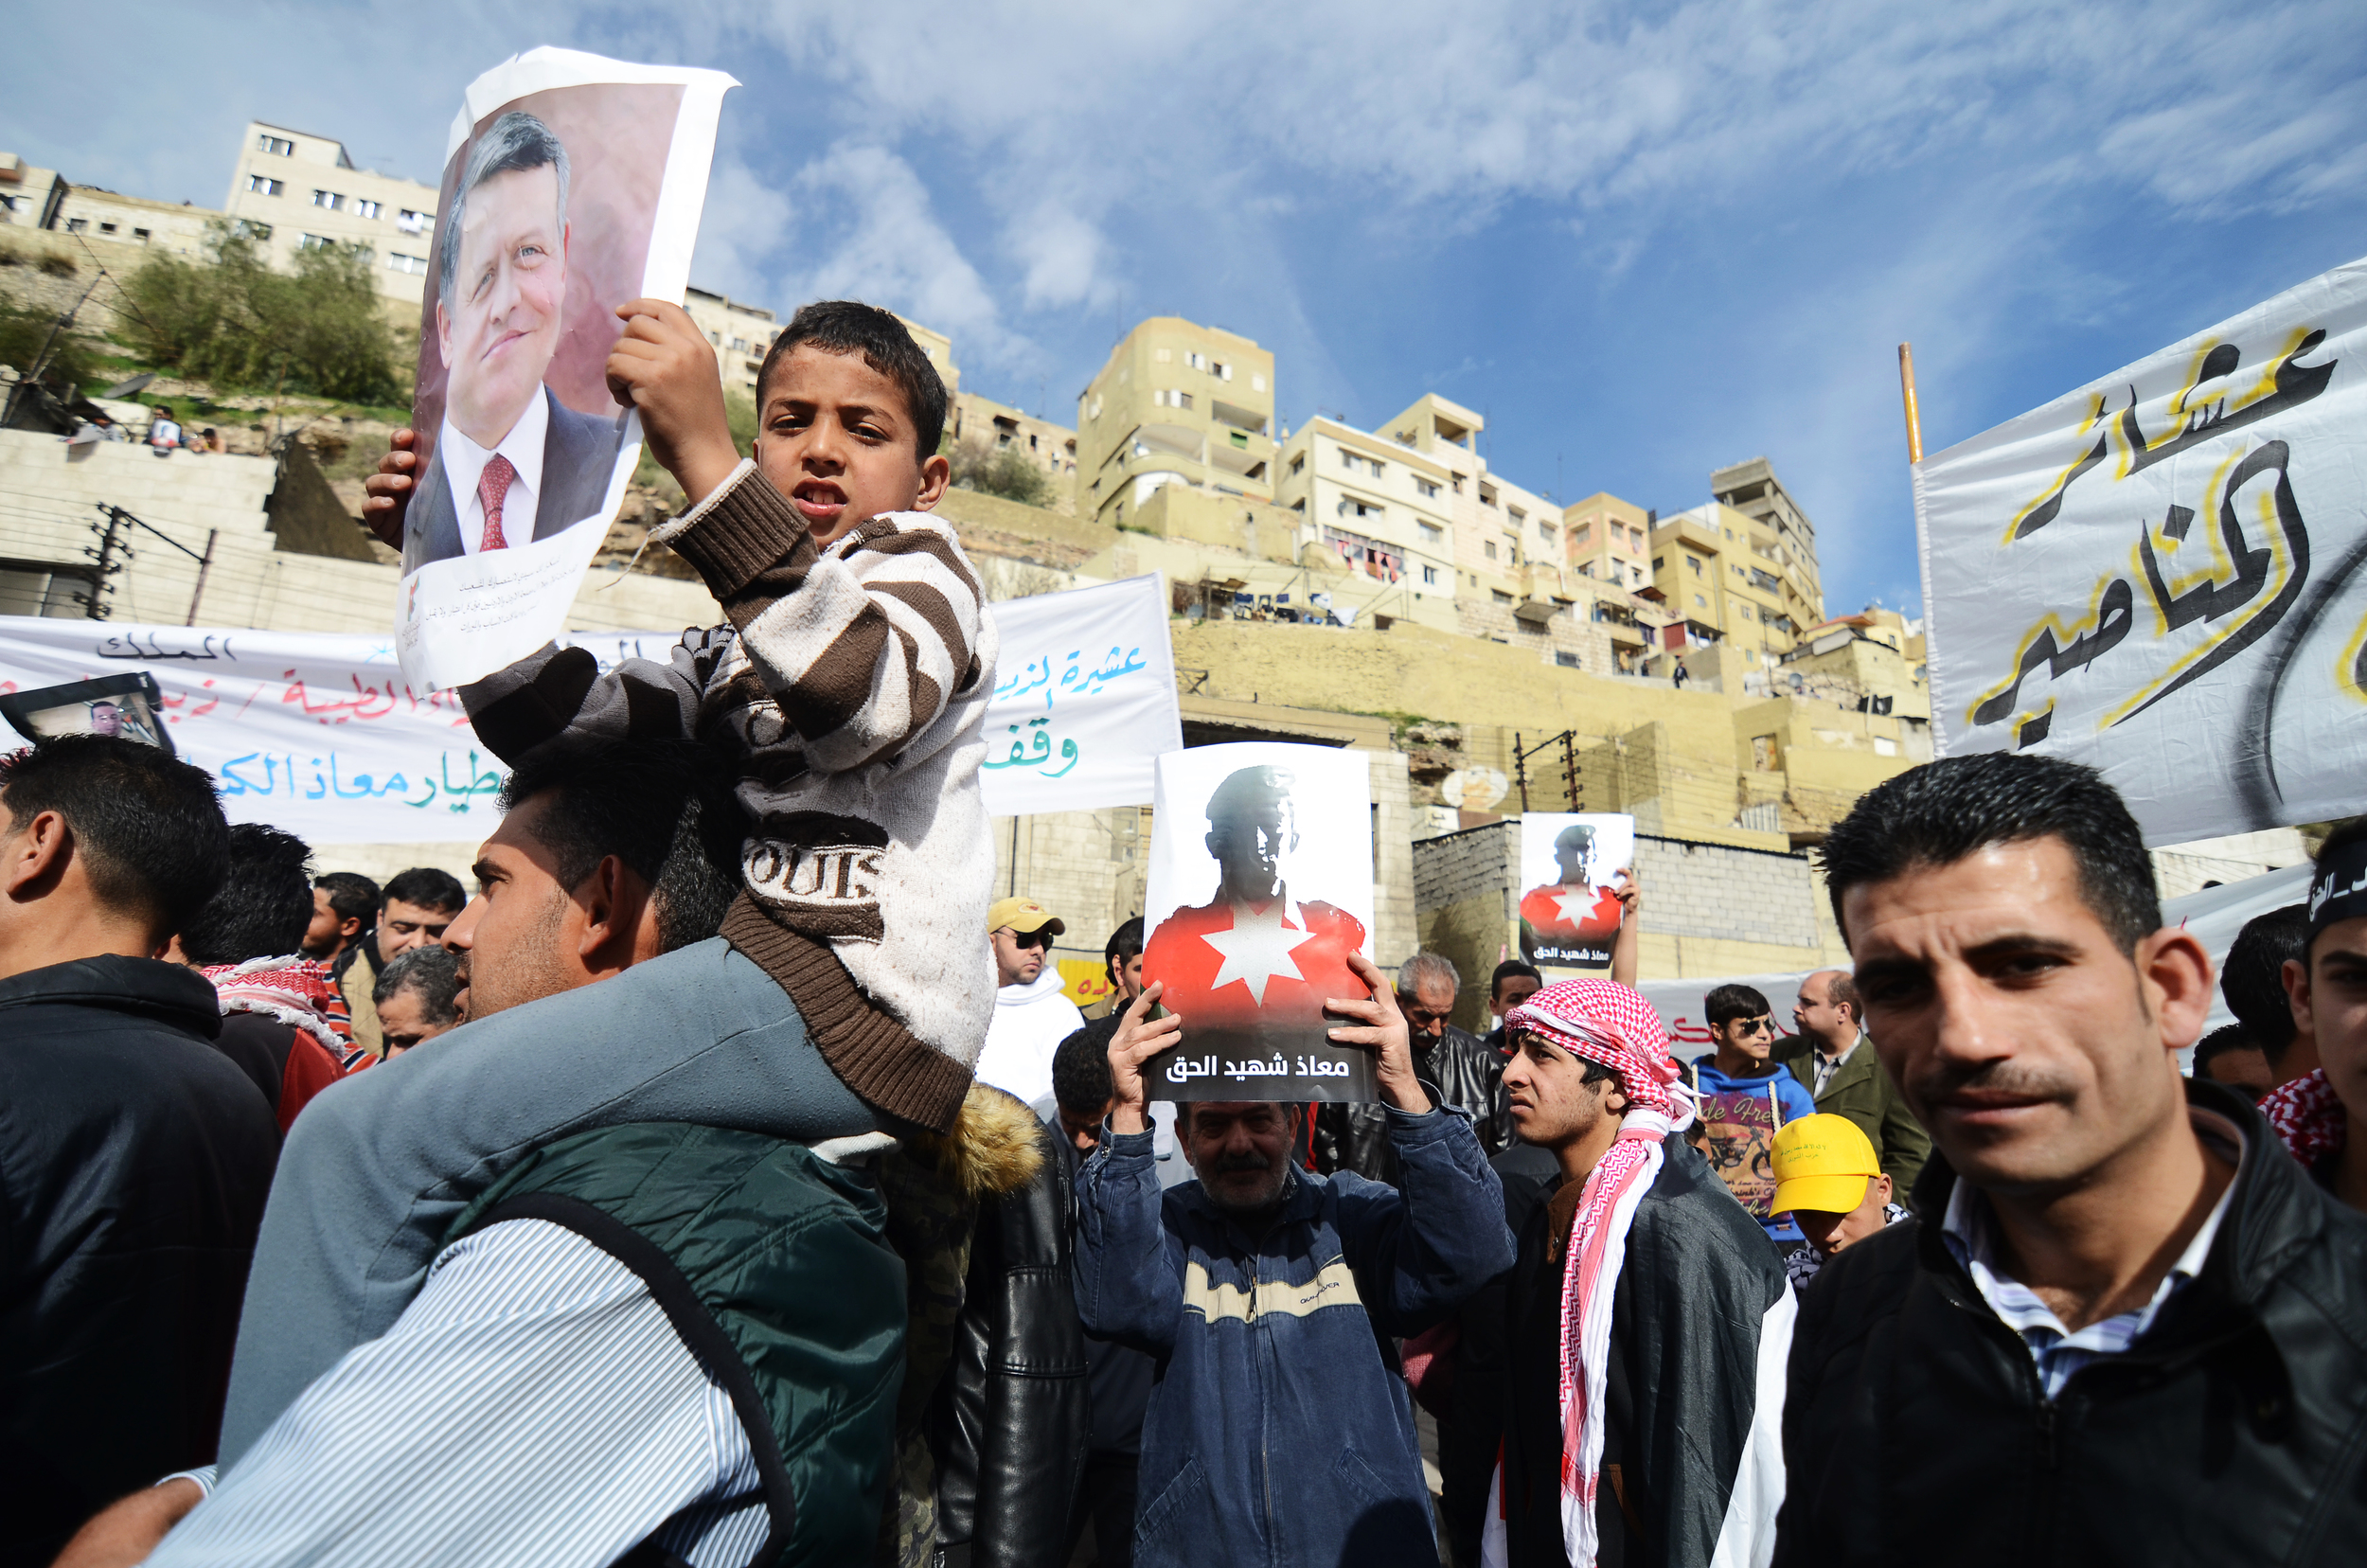 A Jordanian child holds a poster of Jordan's King Abdullah II during Amman's solidarity demonstration, one of the largest the country's seen in years. February 2015.